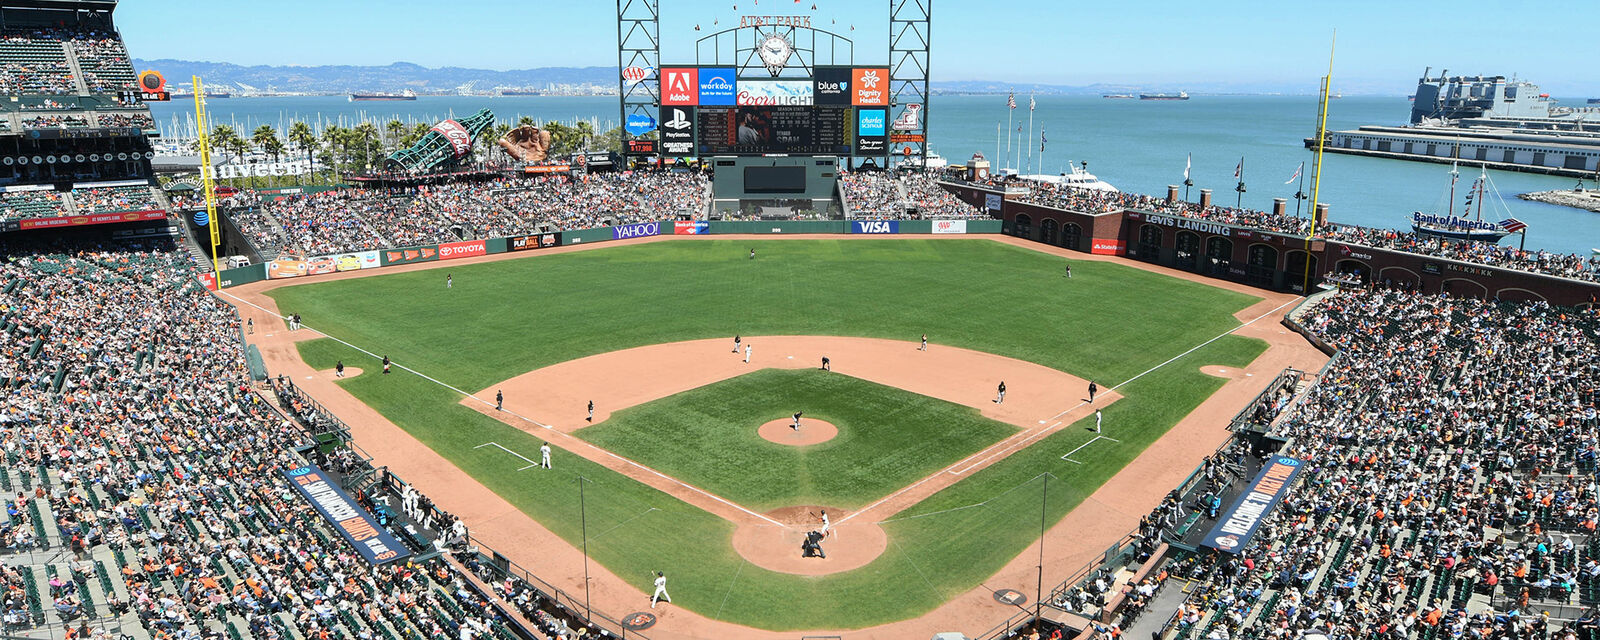 Colorado Rockies at San Francisco Giants Tickets (Backpack)